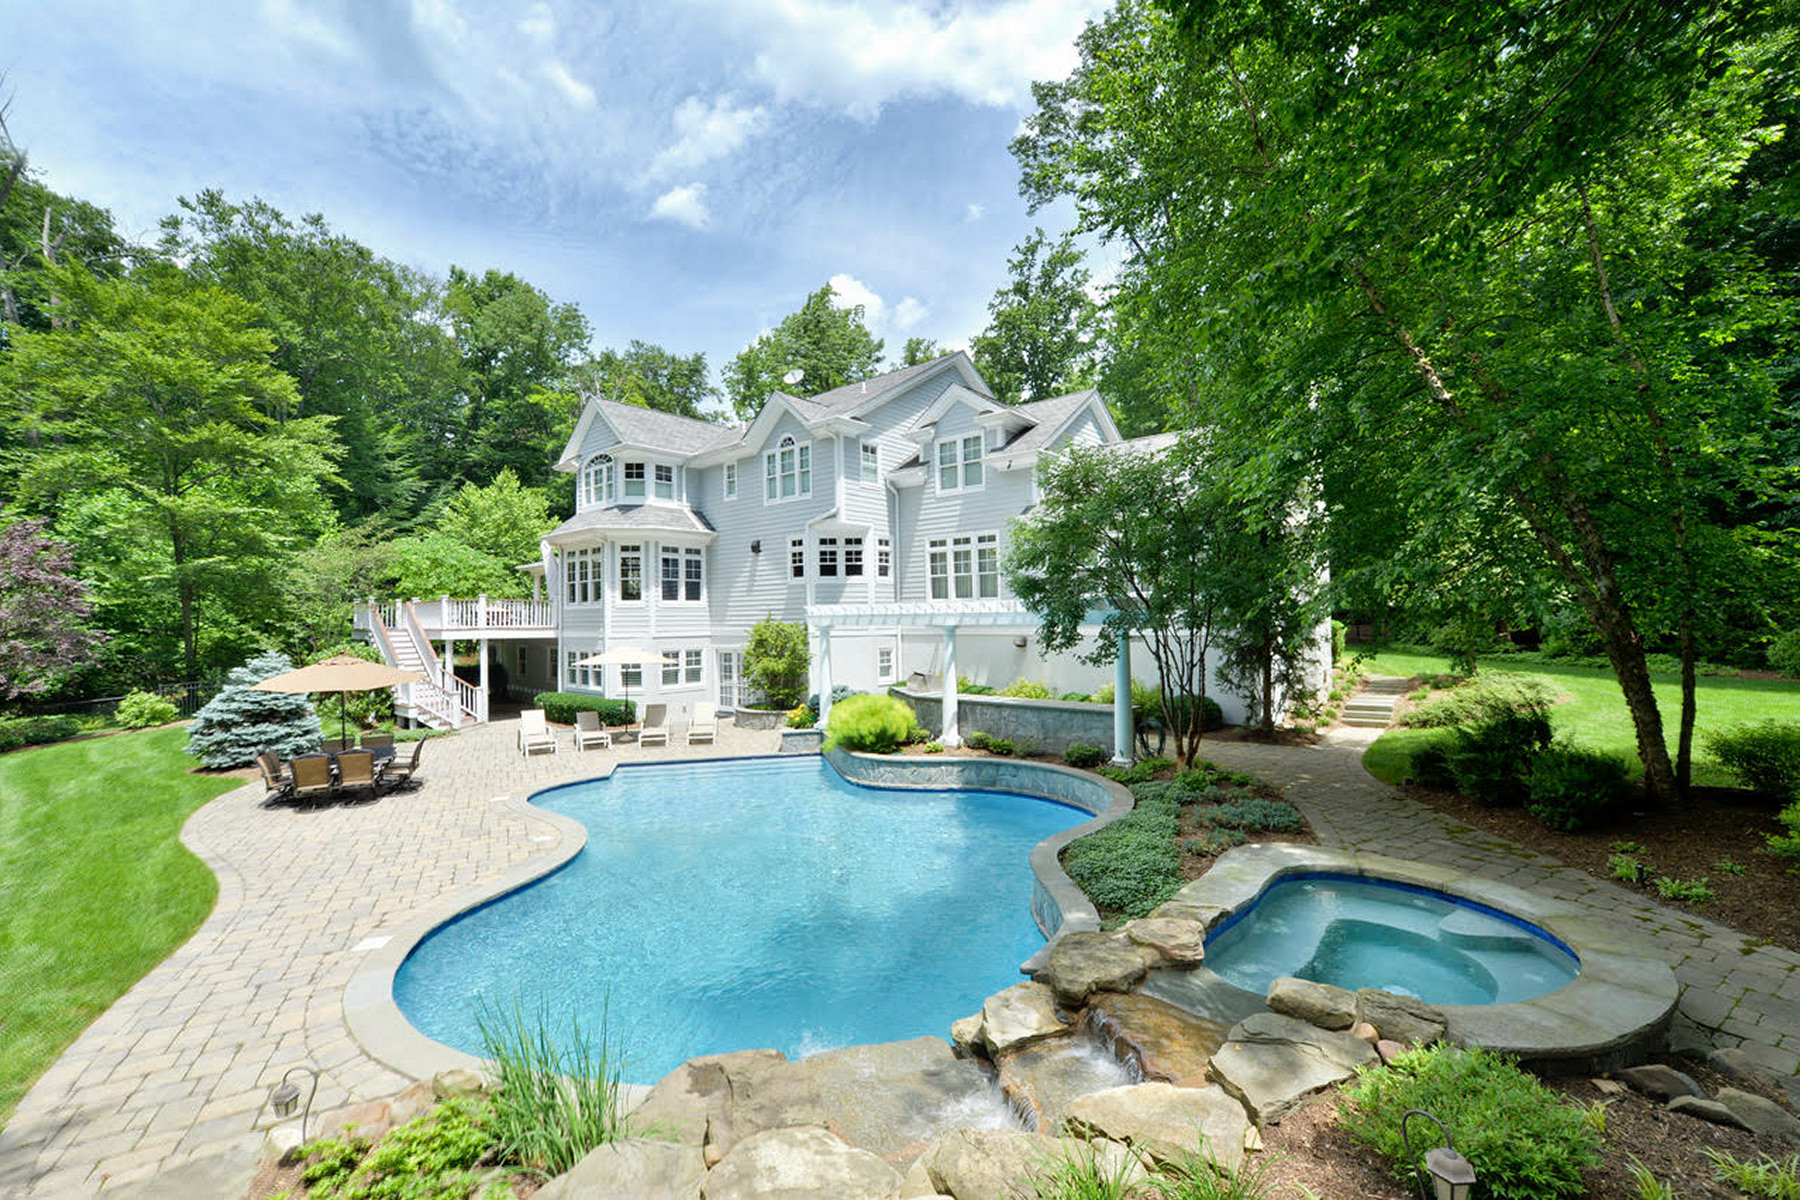 Single Family Home for Sale at Sophisticated Country 13 Glenwood Drive, Saddle River, New Jersey 07458 United States